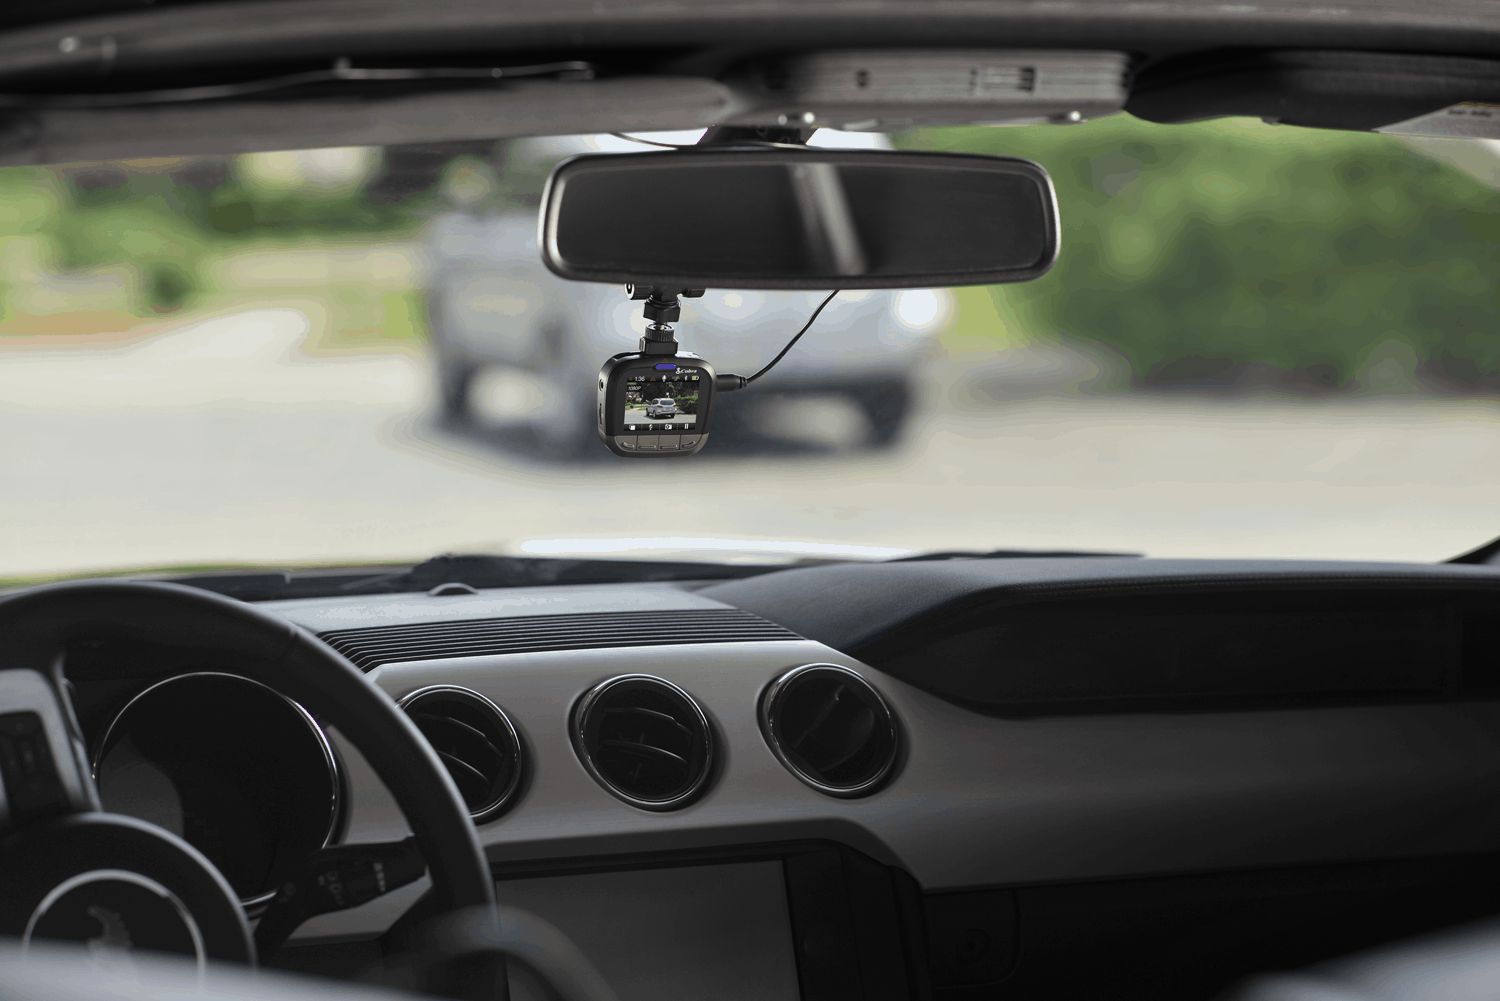 Best Dash Cam for Your Car 2018 – Buyer's Guide and Reviews